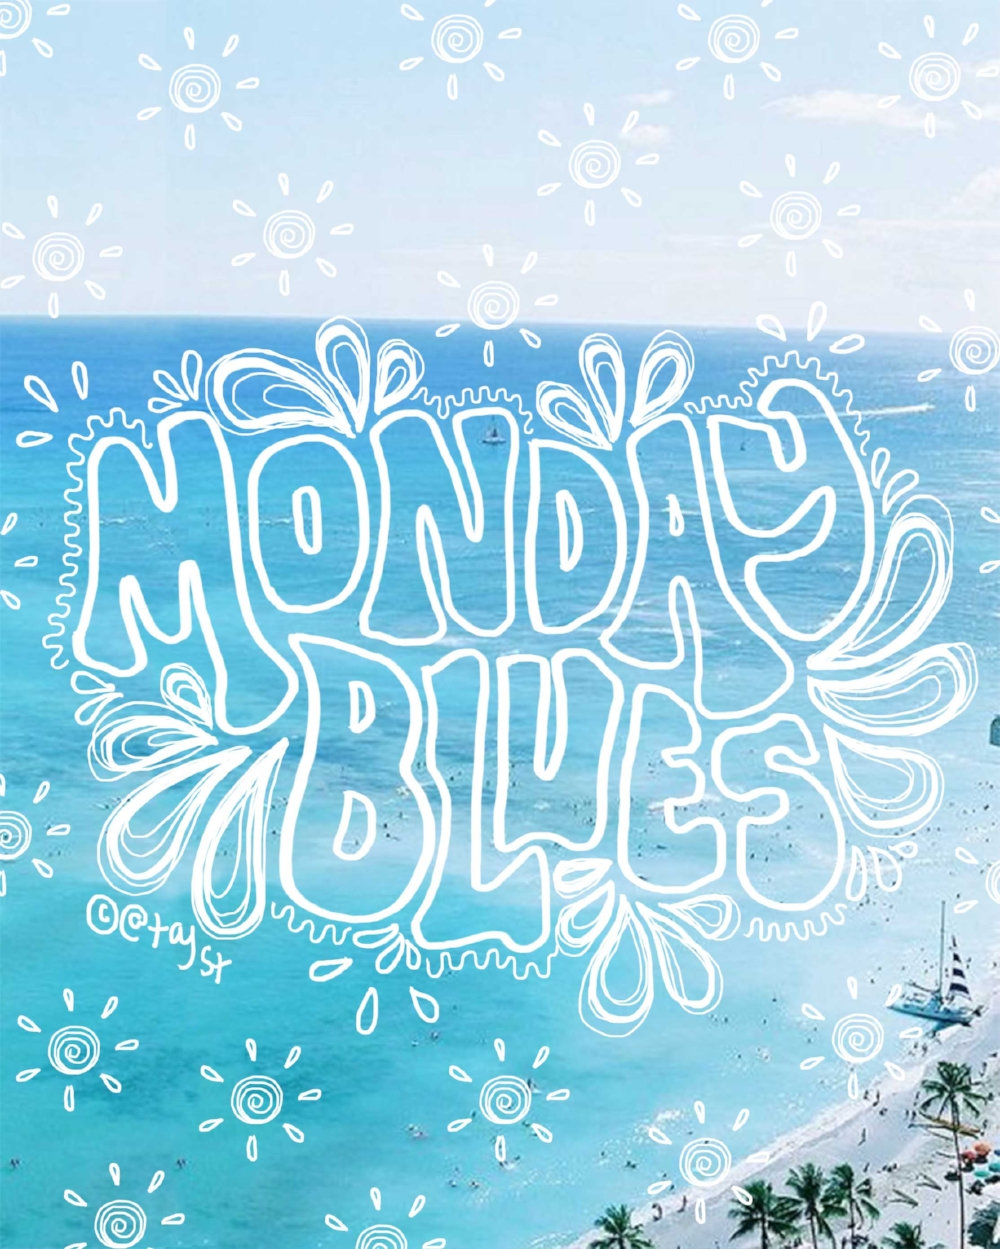 taystmondayblues copy.jpg